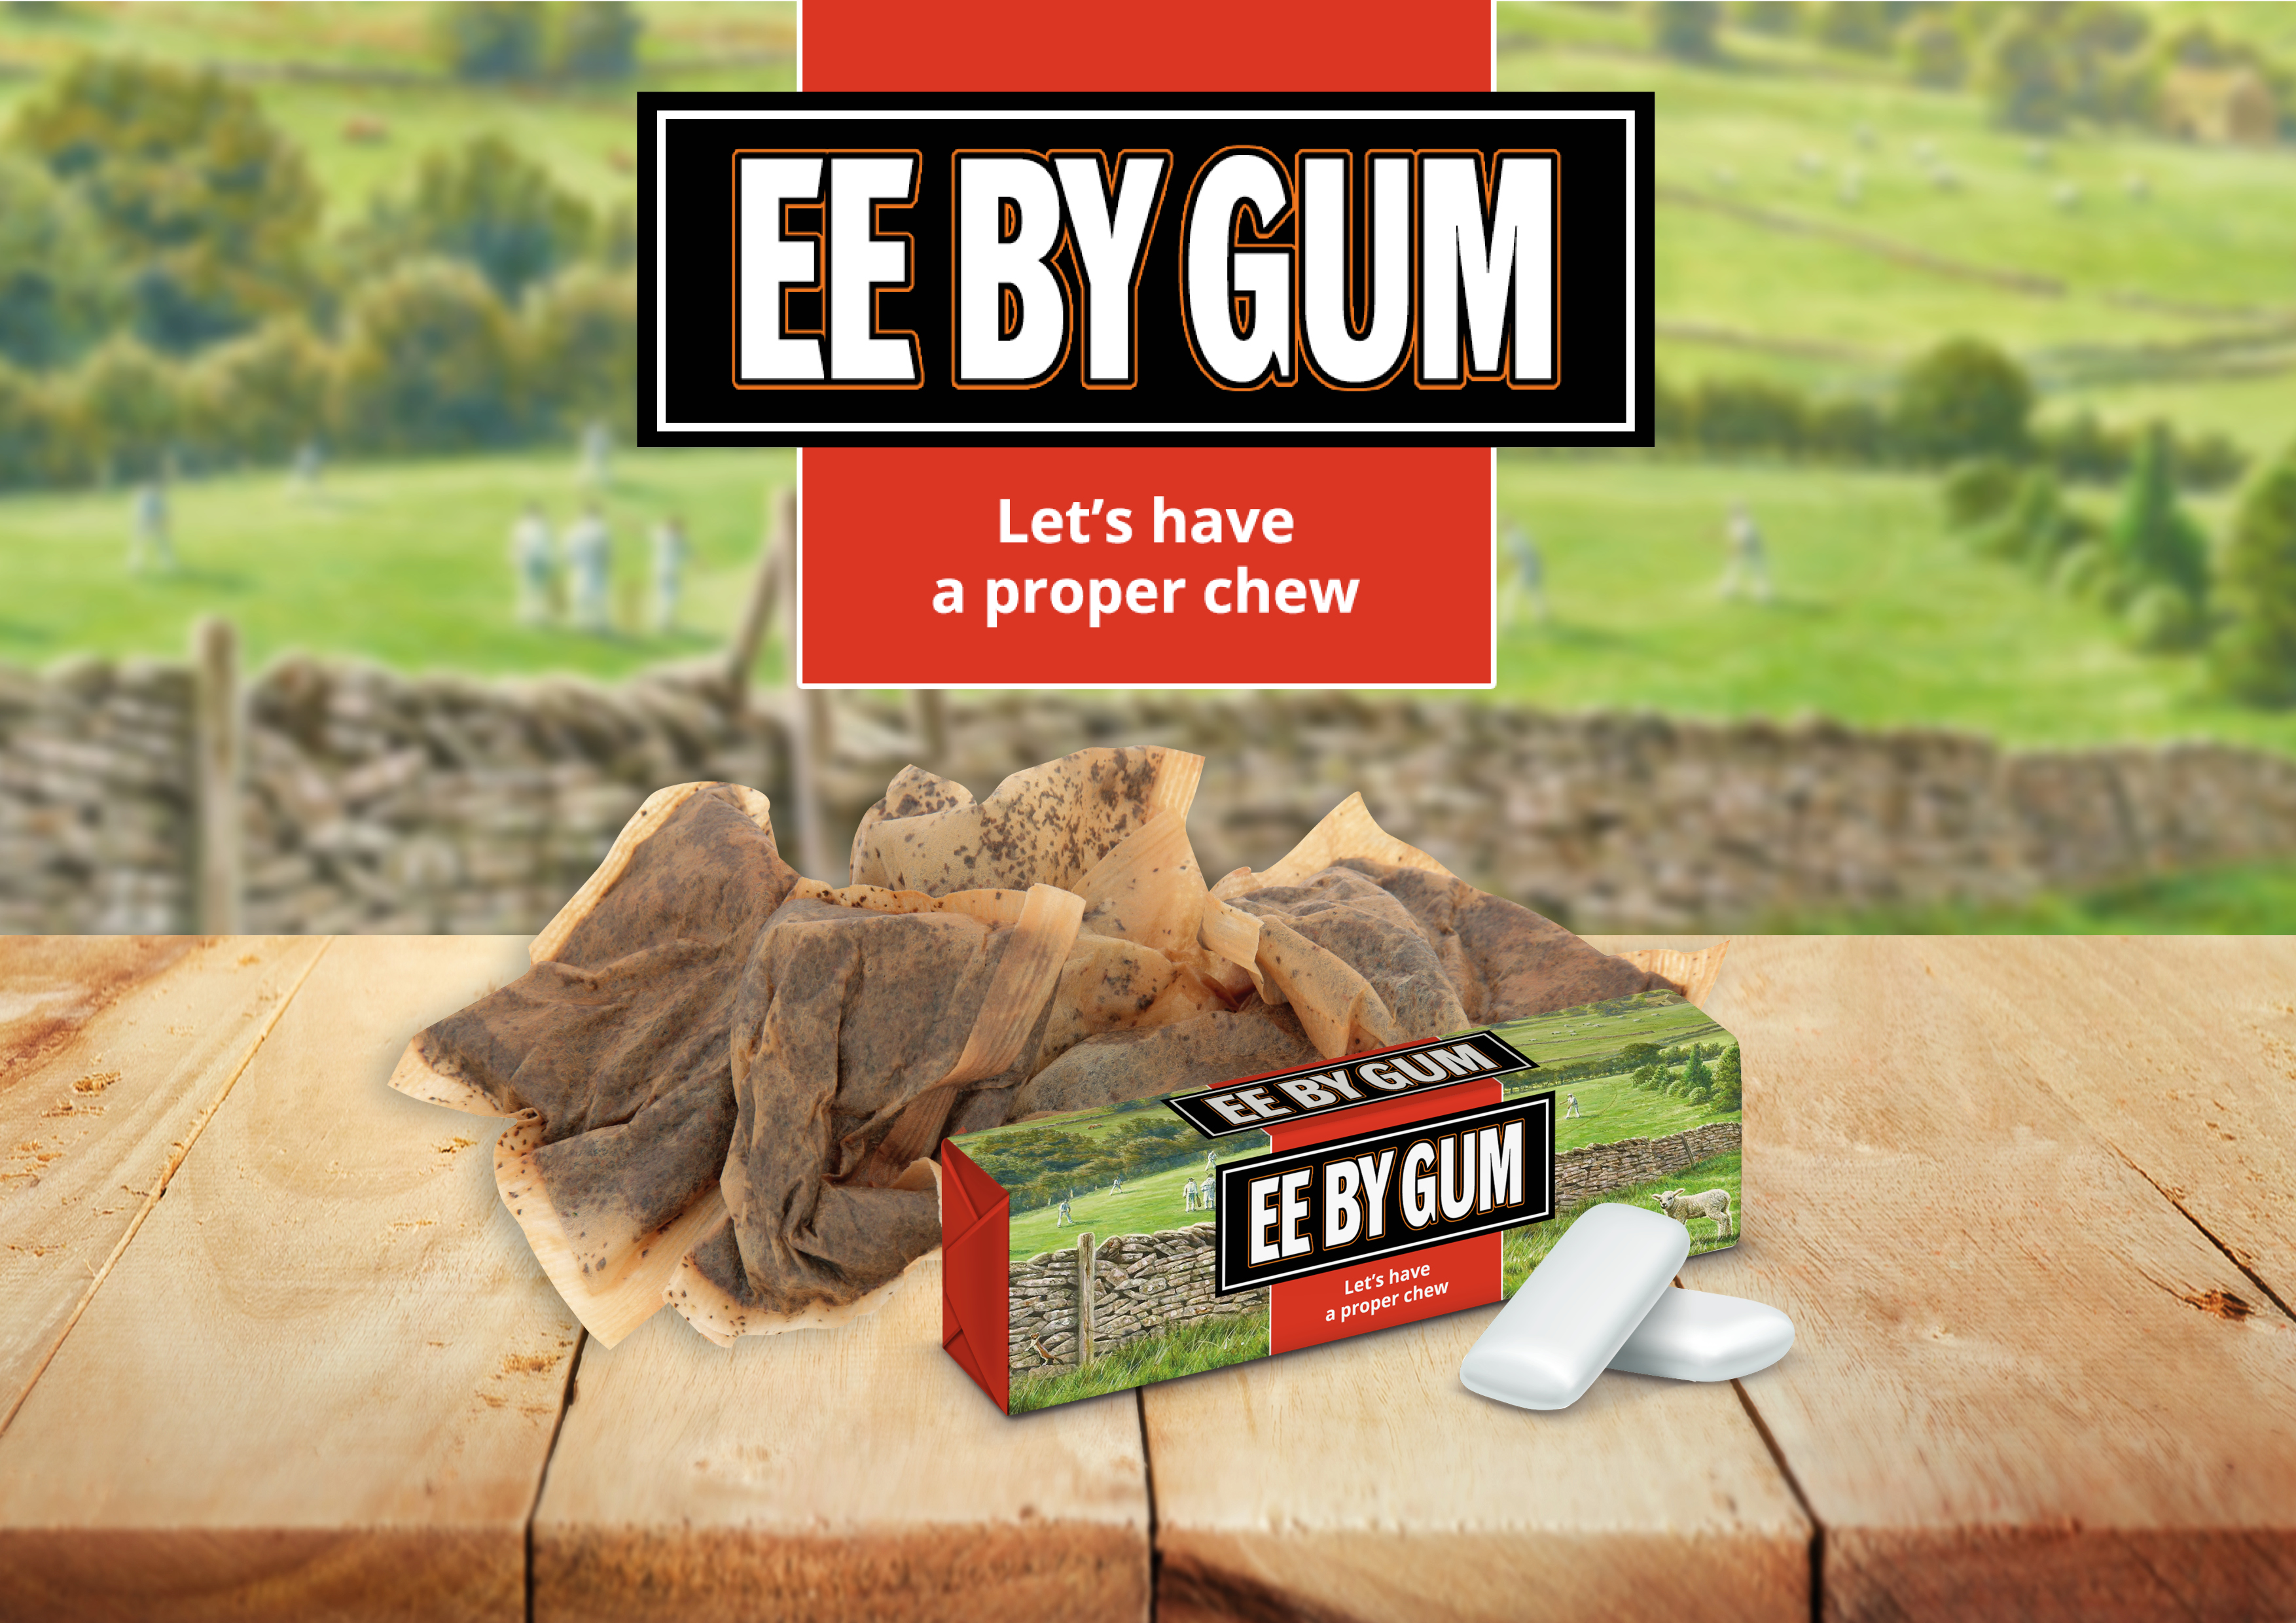 Eee By Gum! You Ain